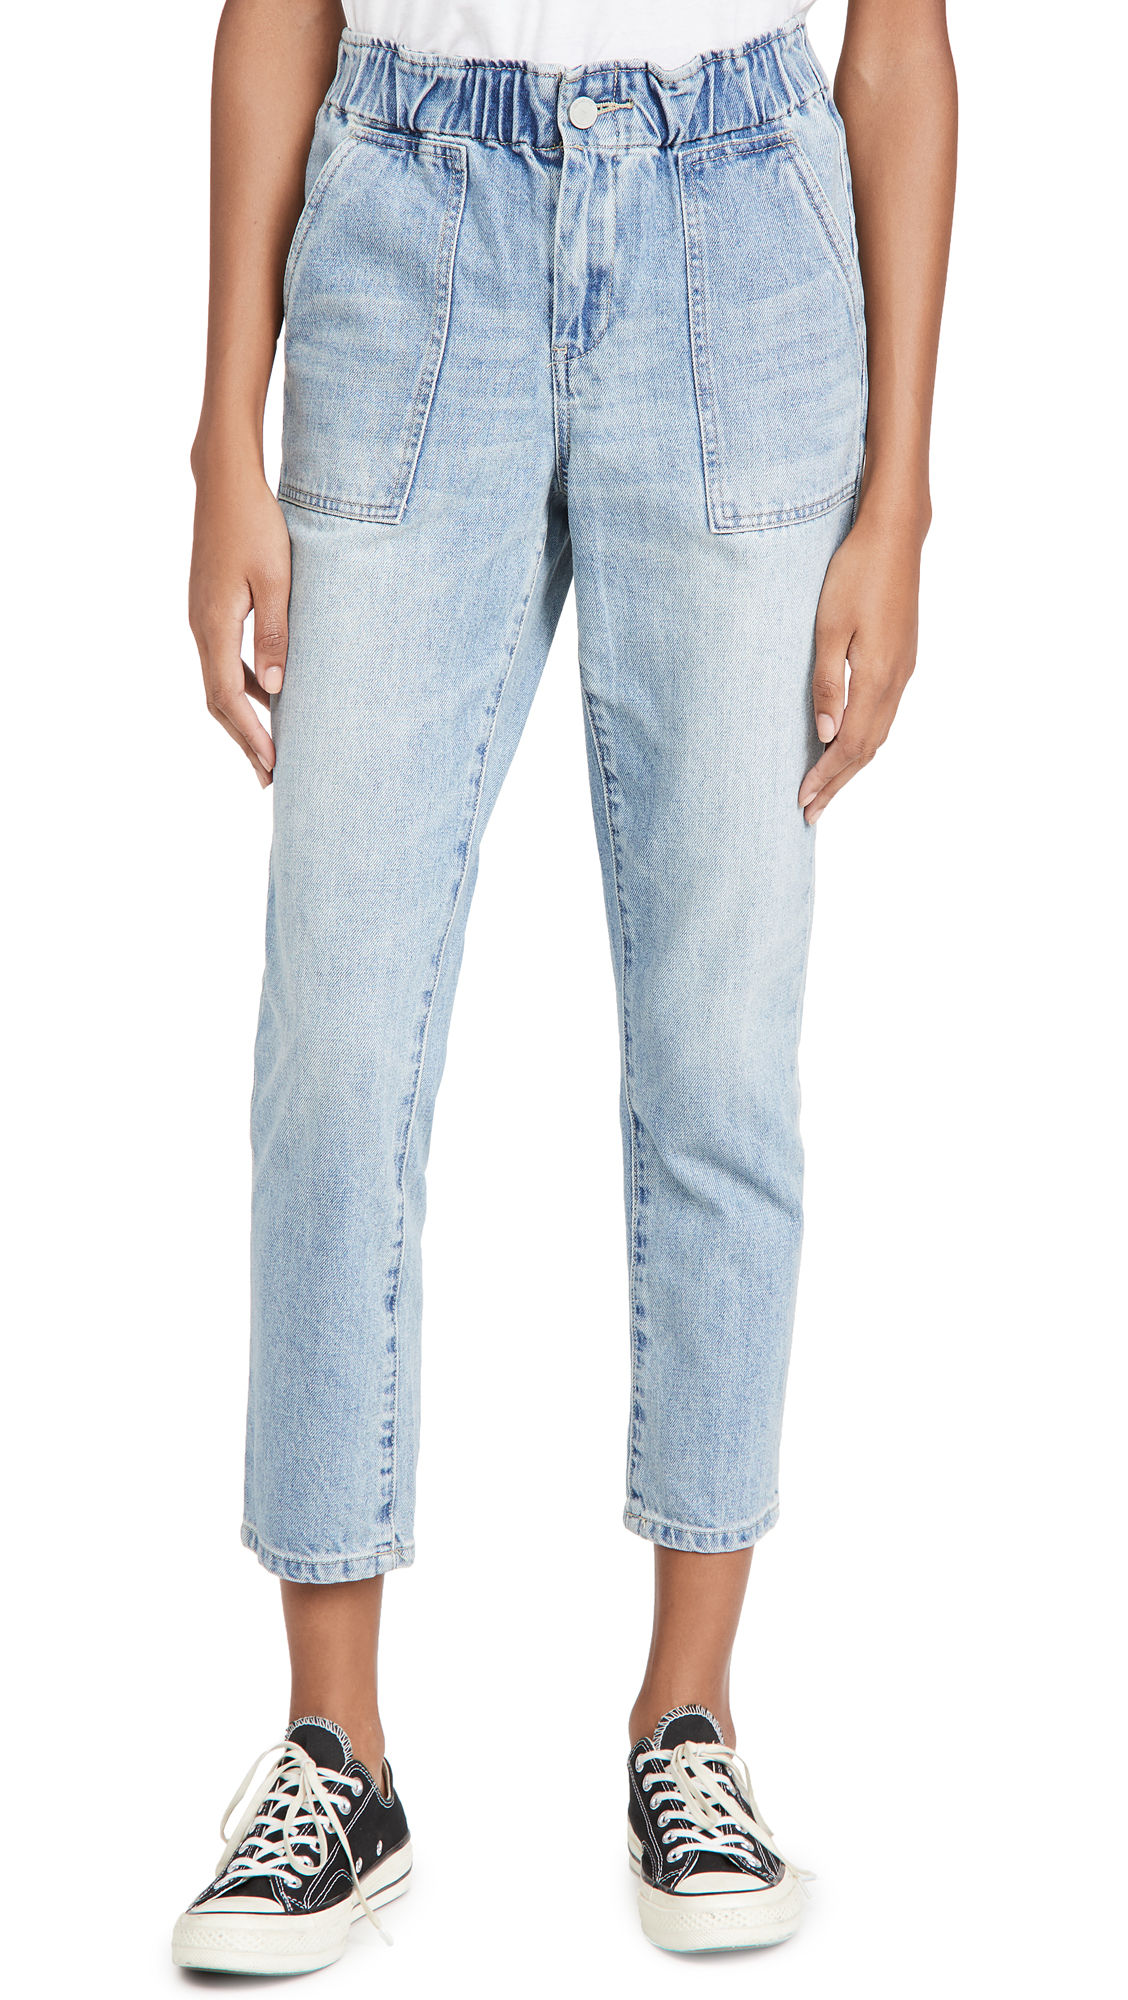 Blank Denim Love Letter Jeans